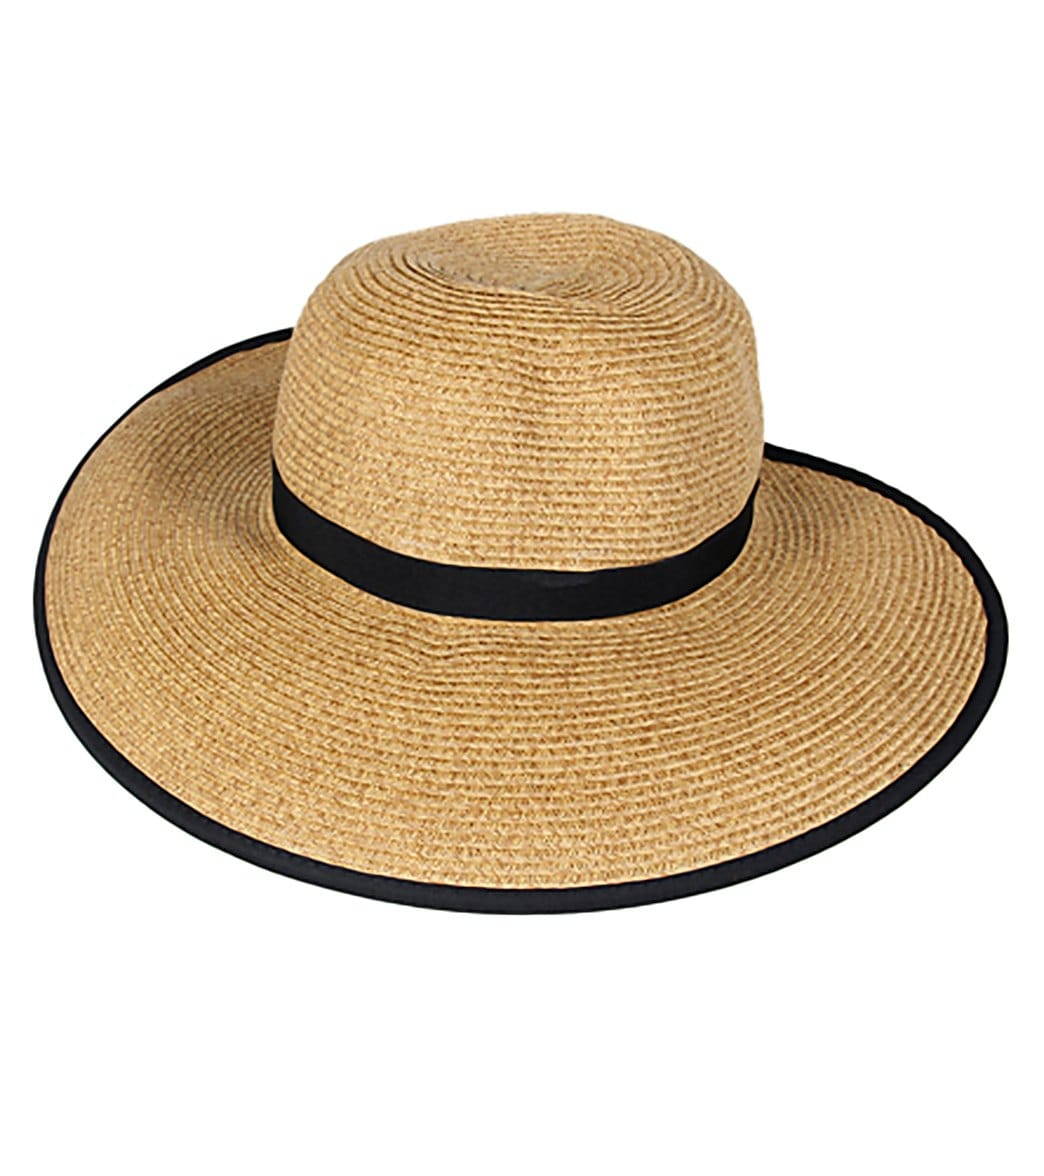 00416fc5 Sun N Sand French Laundry Ribbon Trim Straw Hat at SwimOutlet.com